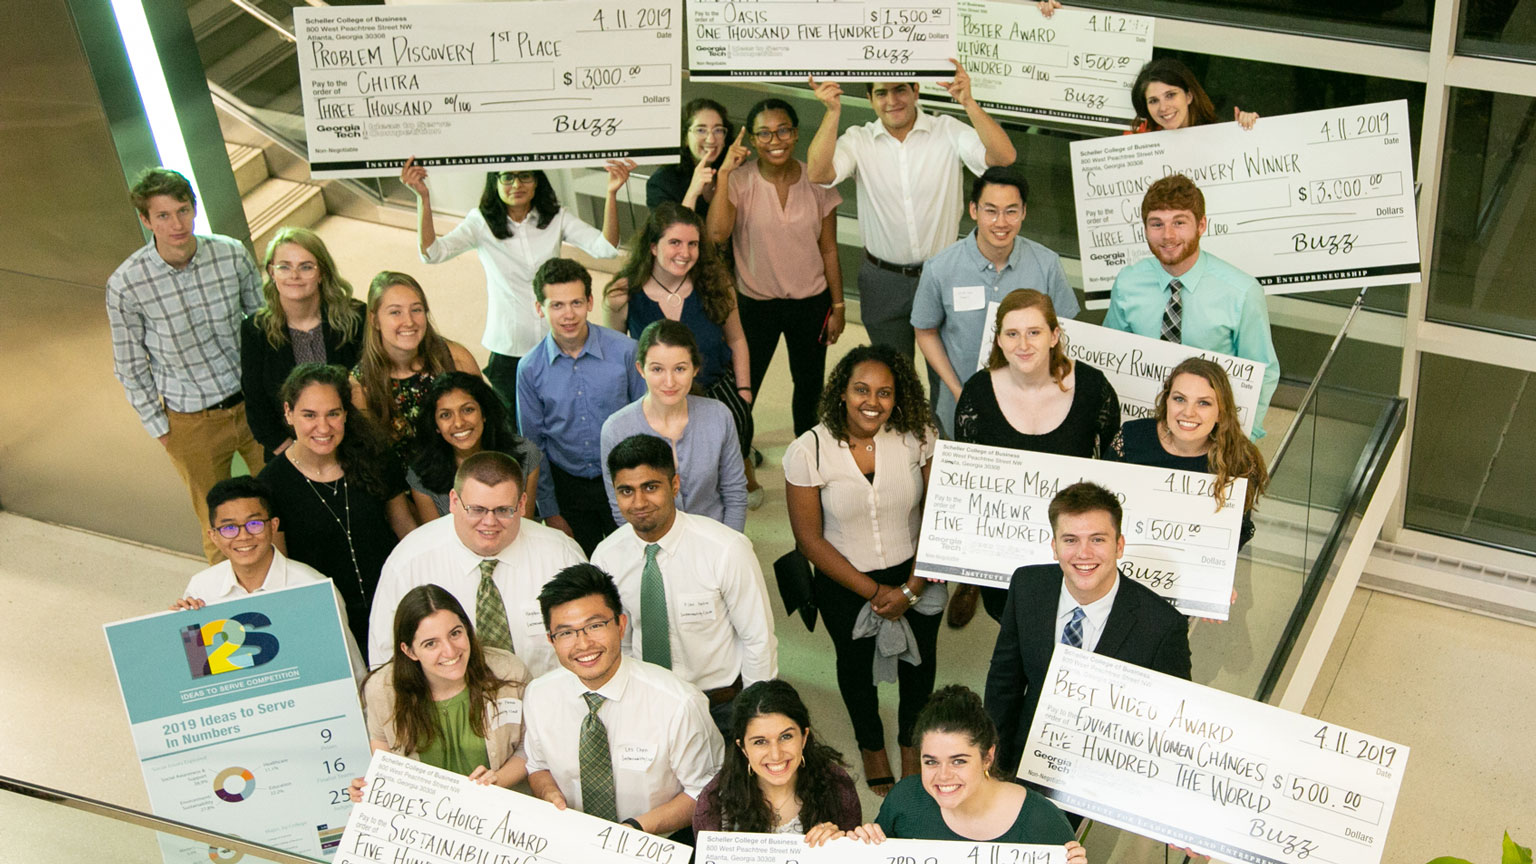 Students from Social Impact: In Depth Exploration and Design show the grants they received for their projects during Georgia Tech's Ideas to Serve competition.